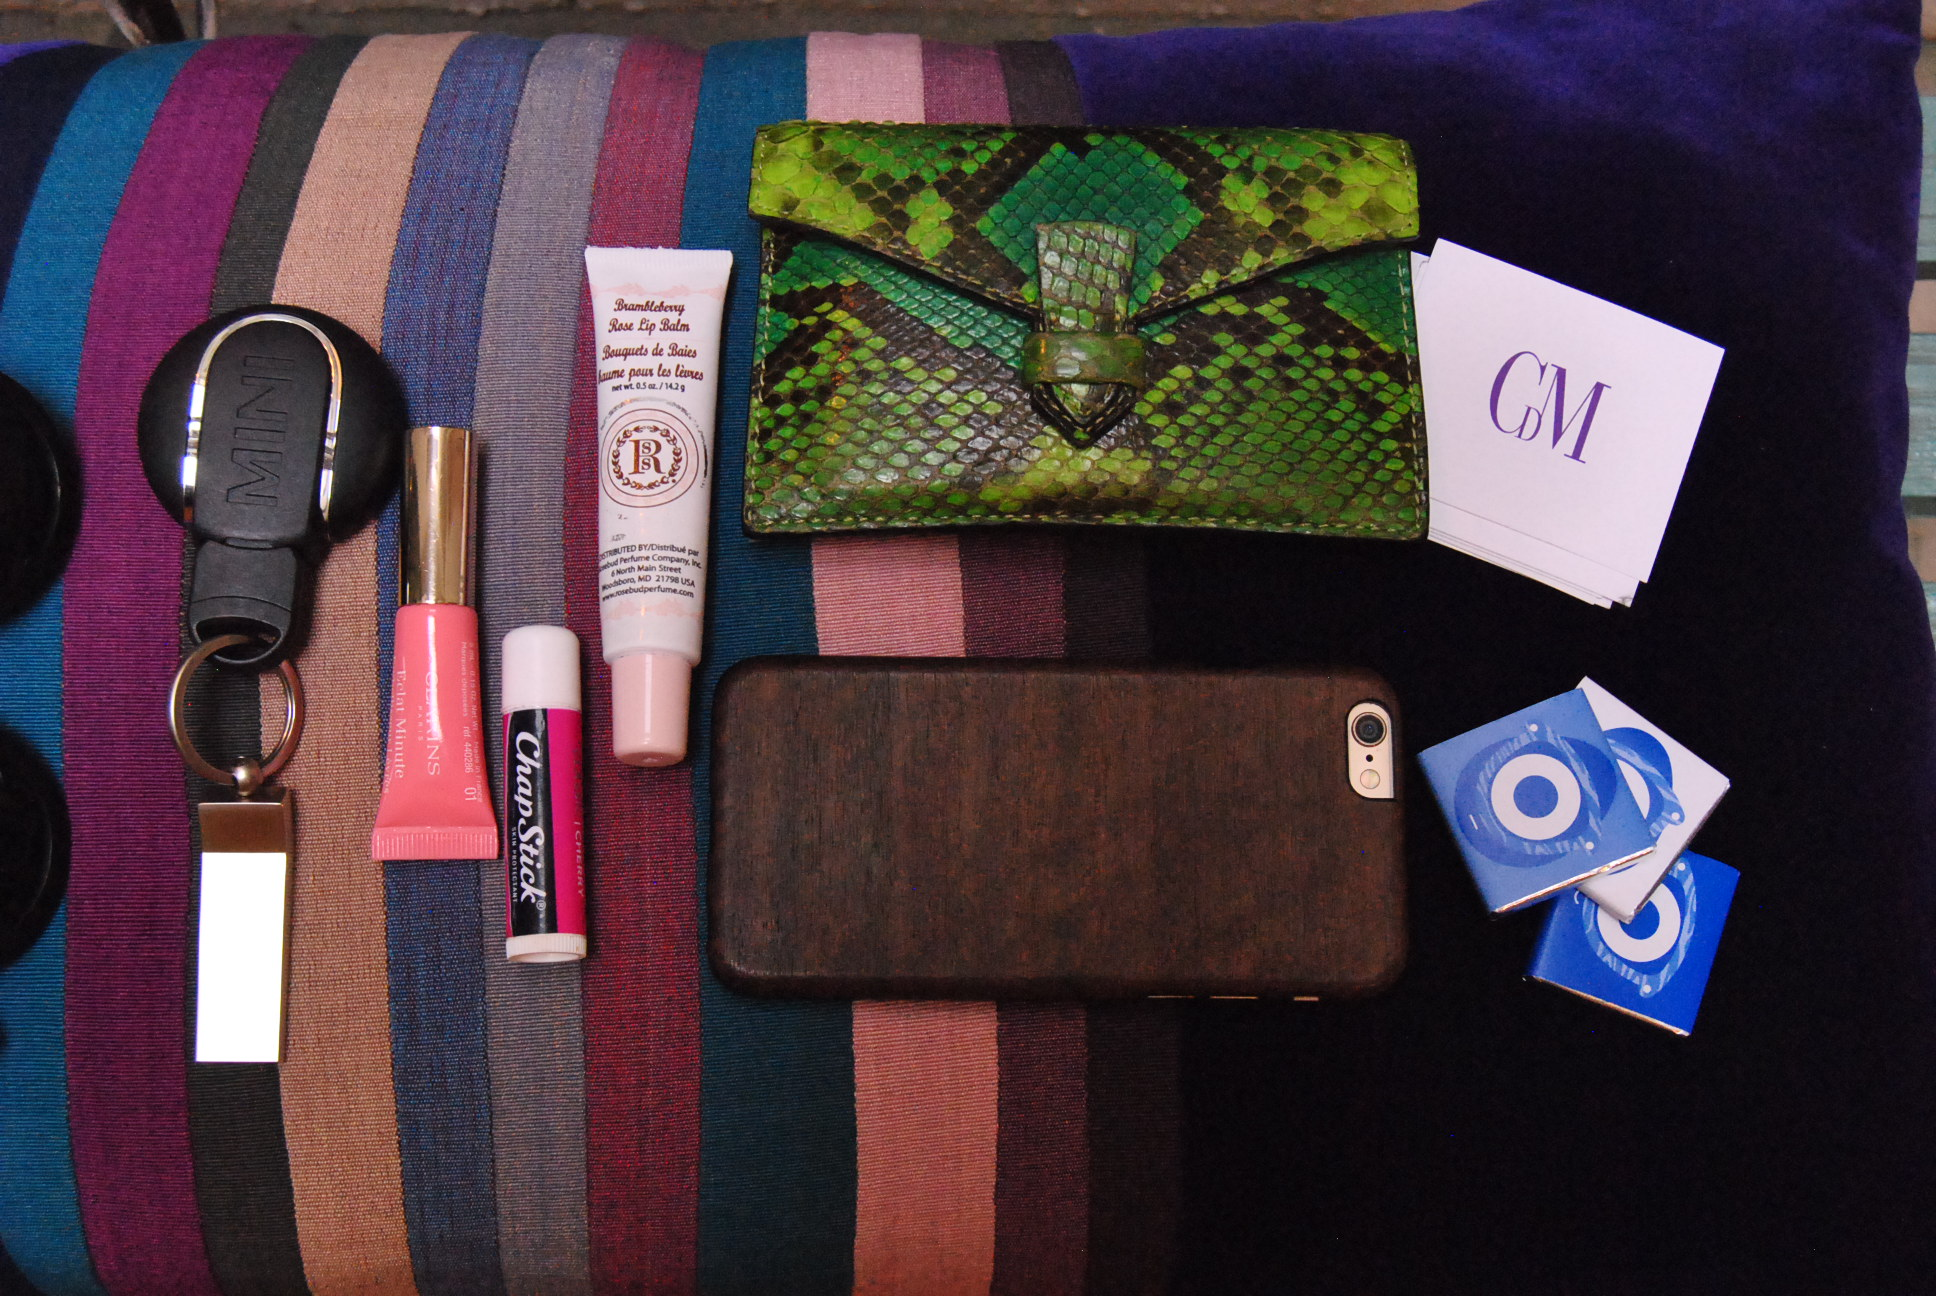 MINI CHAPSTICK COLETTE I PHONE IN HER BAG MYPARISIANLIFE